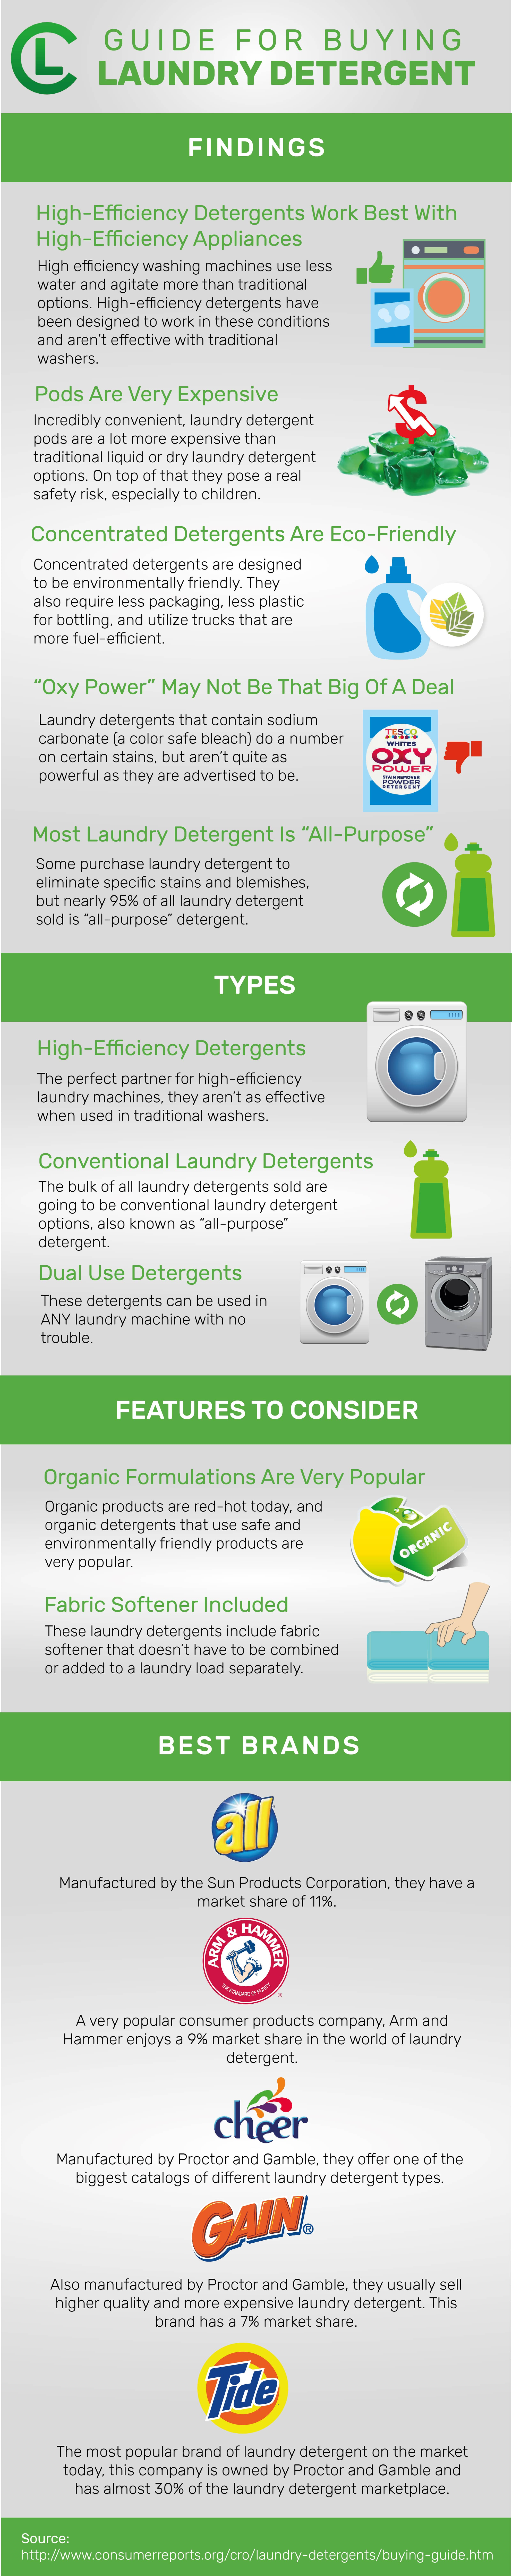 guide for buying detergent infographic